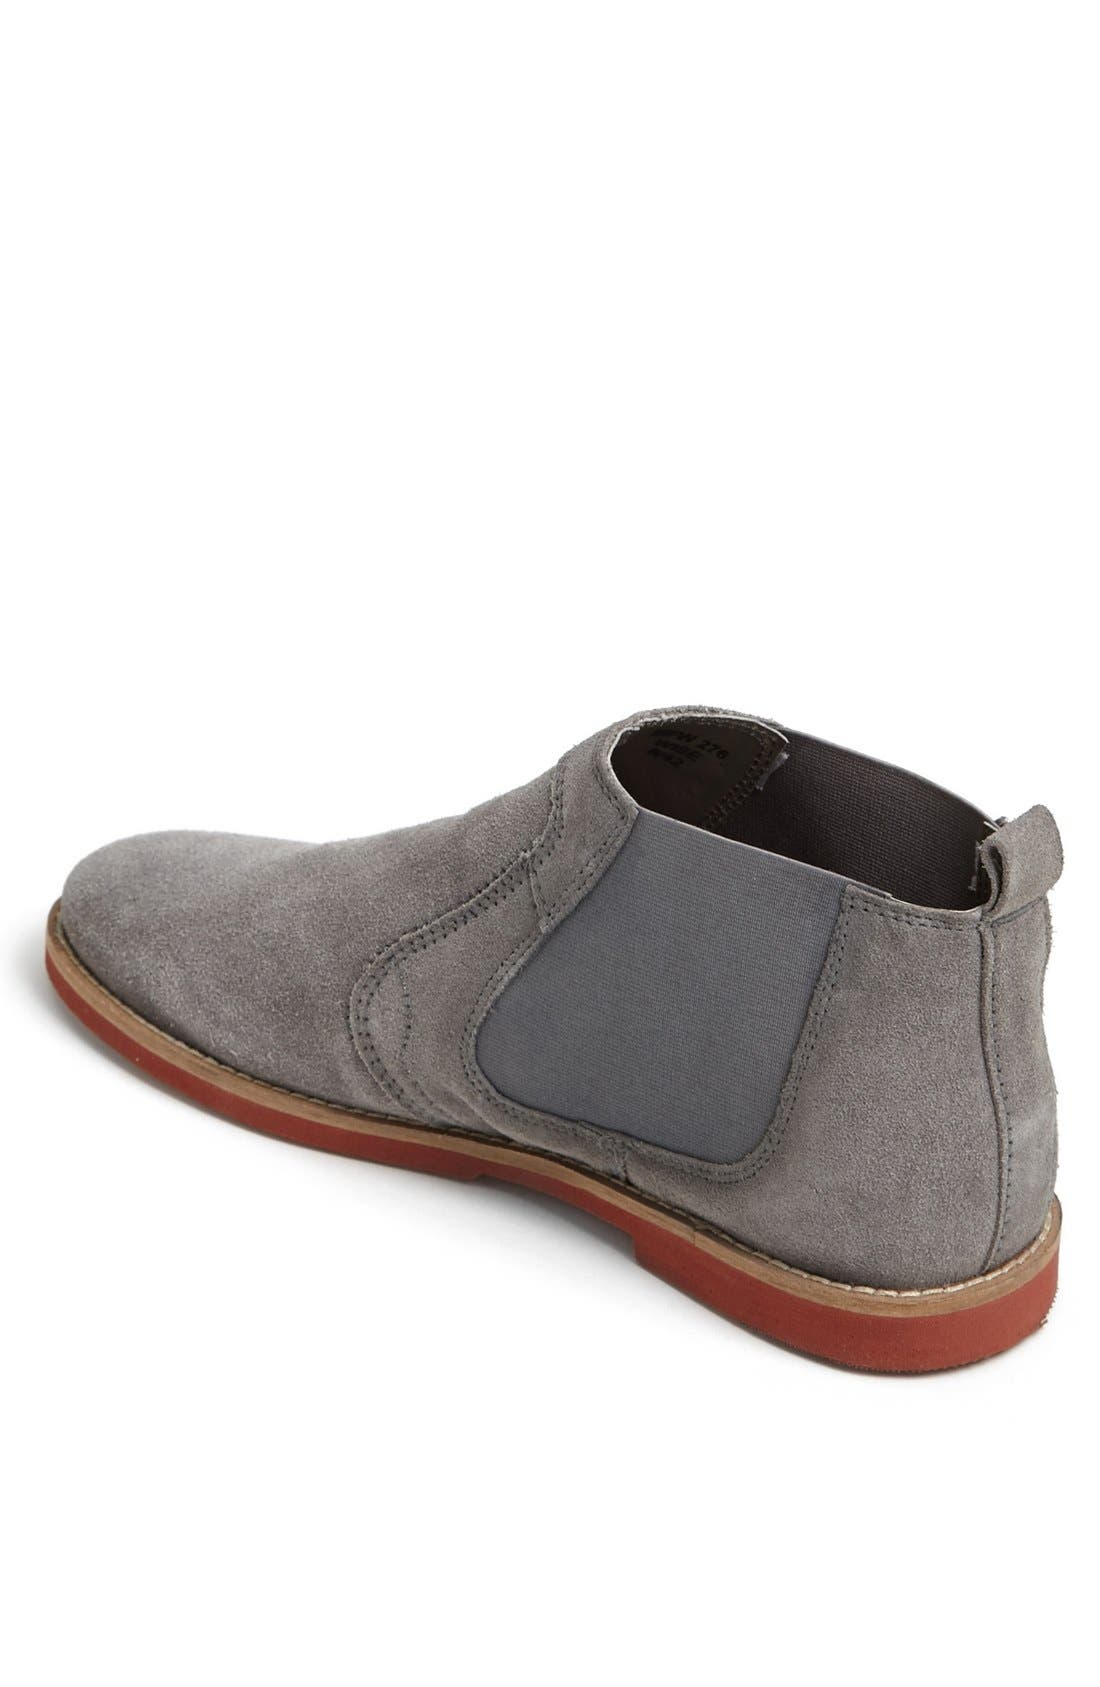 Alternate Image 2  - Frank Wright 'Wise' Chelsea Boot